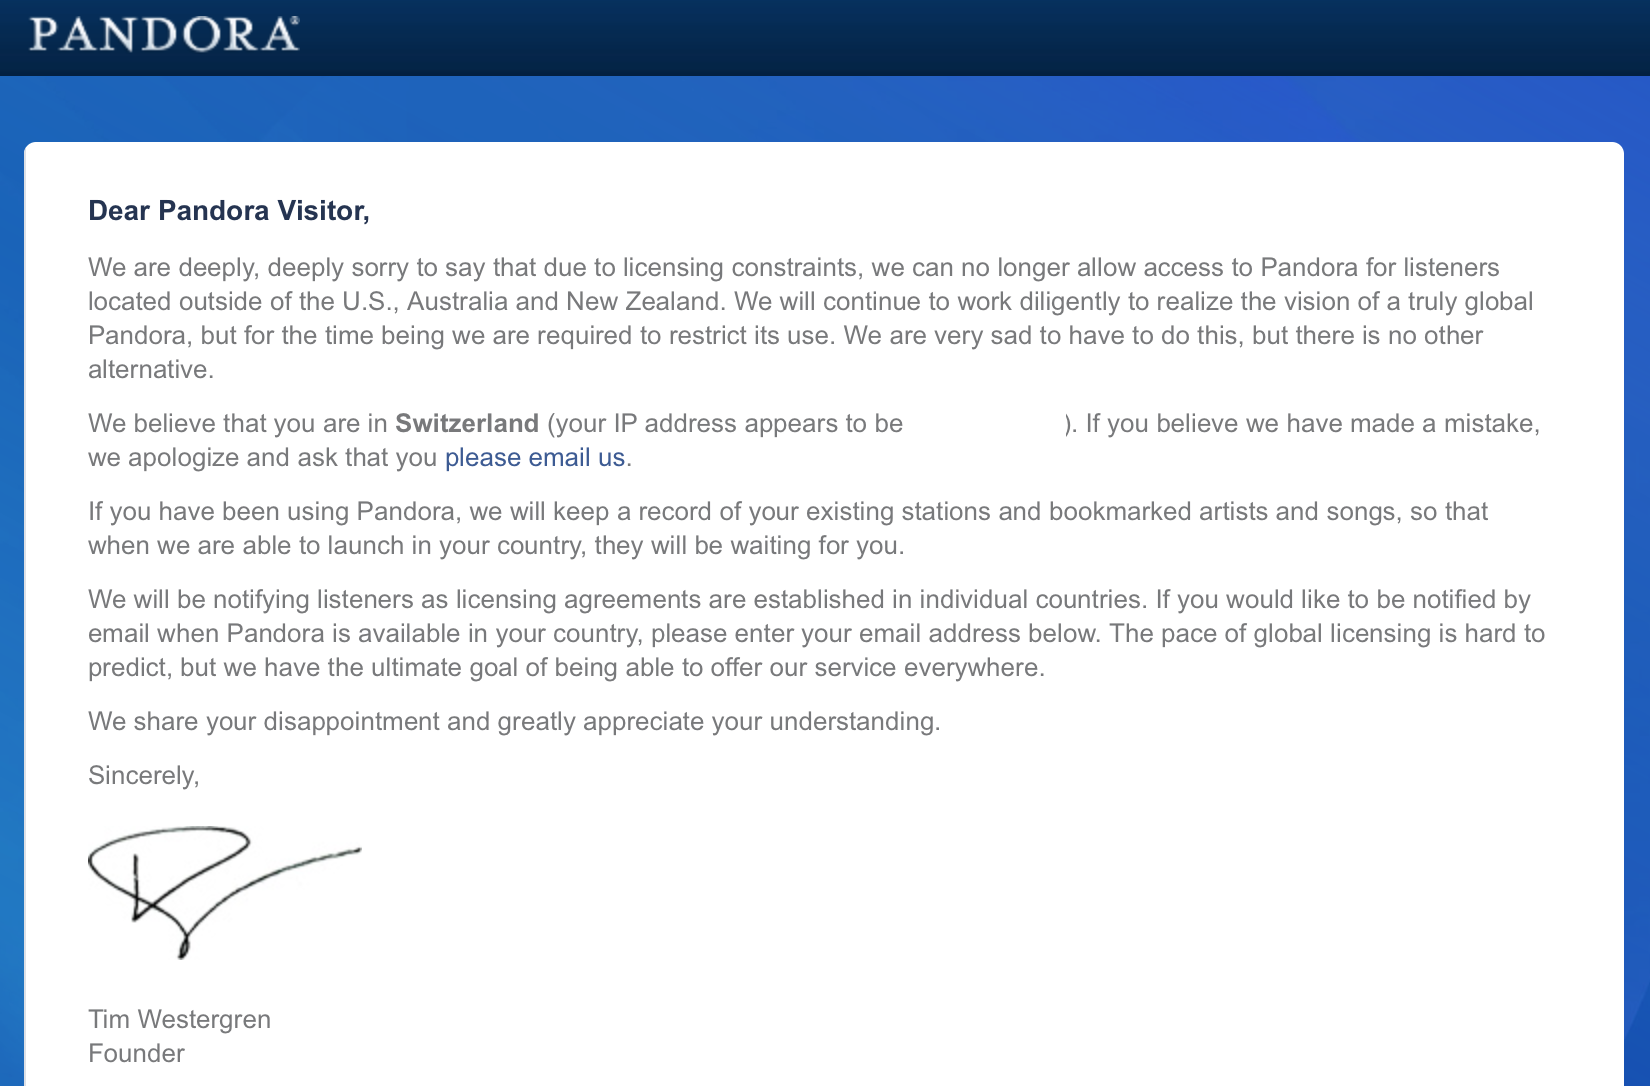 Dear Pandora Visitor, We are deeply, deeply sorry to say that due to licensing constraints, we can no longer allow access to Pandora for listeners located outside of the U.S., Australia and New Zealand. We will continue to work diligently to realize the vision of a truly global Pandora, but for the time being we are required to restrict its use. We are very sad to have to do this, but there is no other alternative. We believe that you are in Switzerland (your IP address appears to be 83.78.71.142). If you believe we have made a mistake, we apologize and ask that you please email us. If you have been using Pandora, we will keep a record of your existing stations and bookmarked artists and songs, so that when we are able to launch in your country, they will be waiting for you. We will be notifying listeners as licensing agreements are established in individual countries. If you would like to be notified by email when Pandora is available in your country, please enter your email address below. The pace of global licensing is hard to predict, but we have the ultimate goal of being able to offer our service everywhere. We share your disappointment and greatly appreciate your understanding. Sincerely, Tim Westergen Tim Westergren Founder